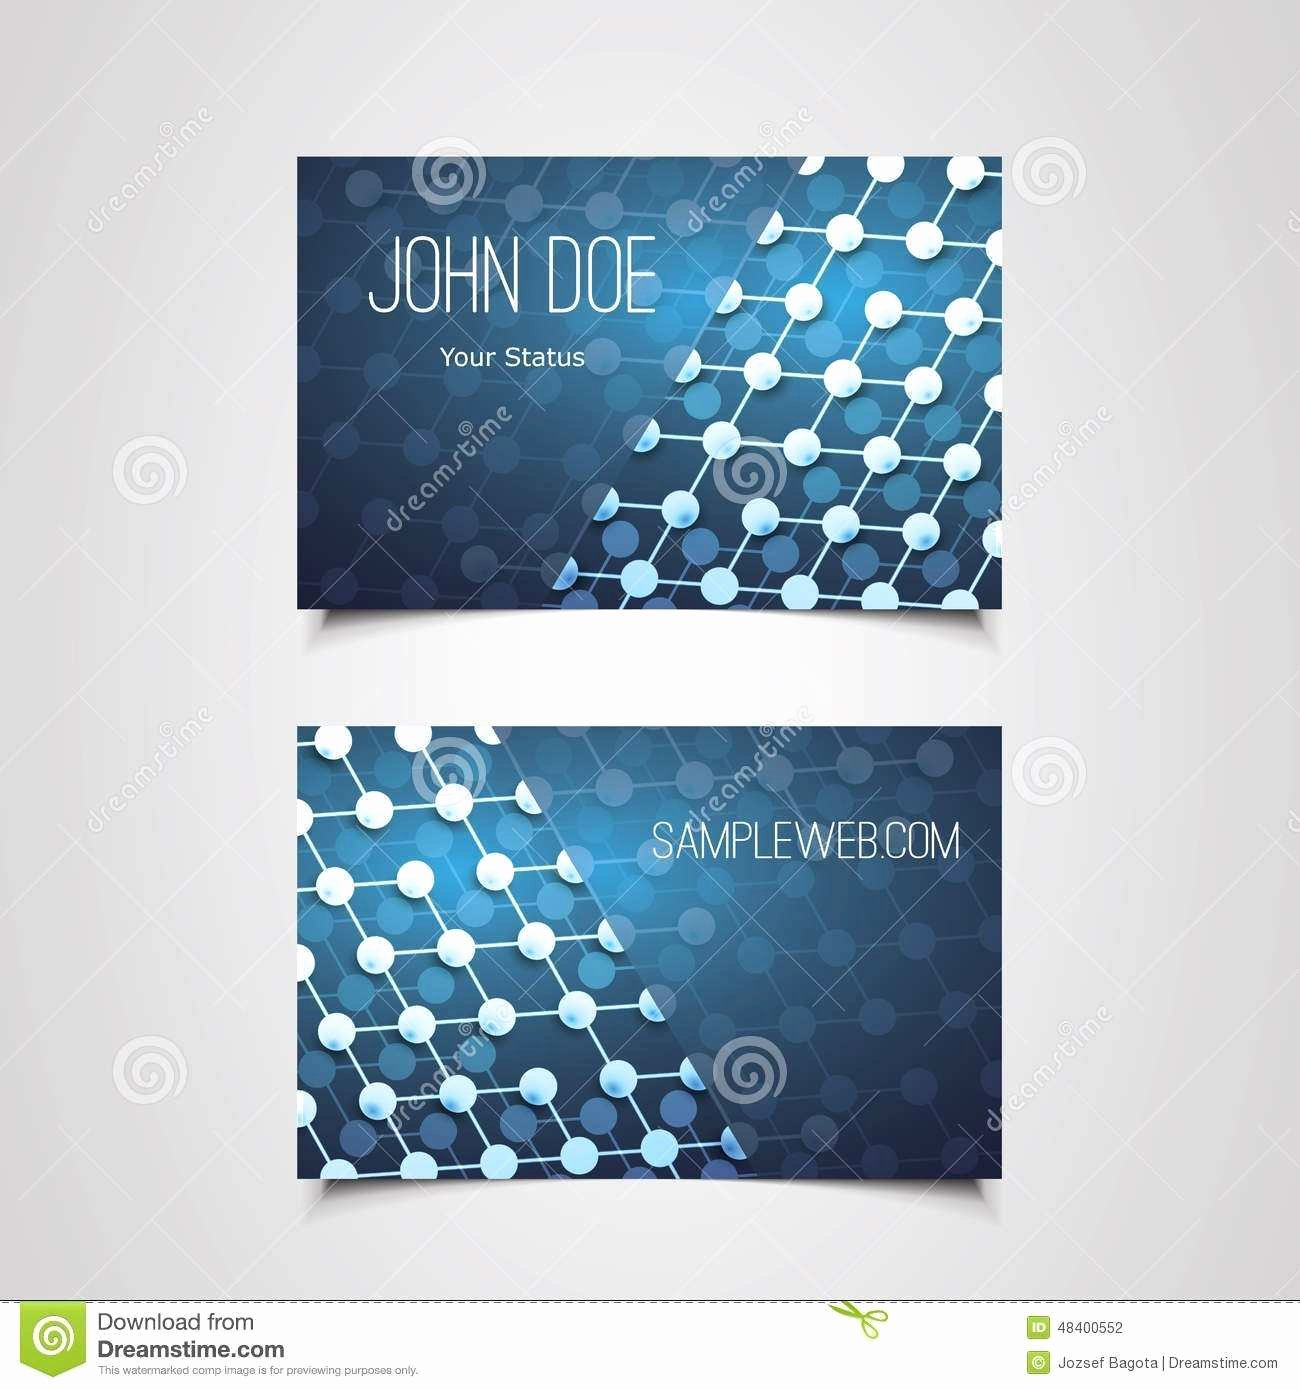 Networking Business Card Template Inspirational New S Networking Business Card Templates